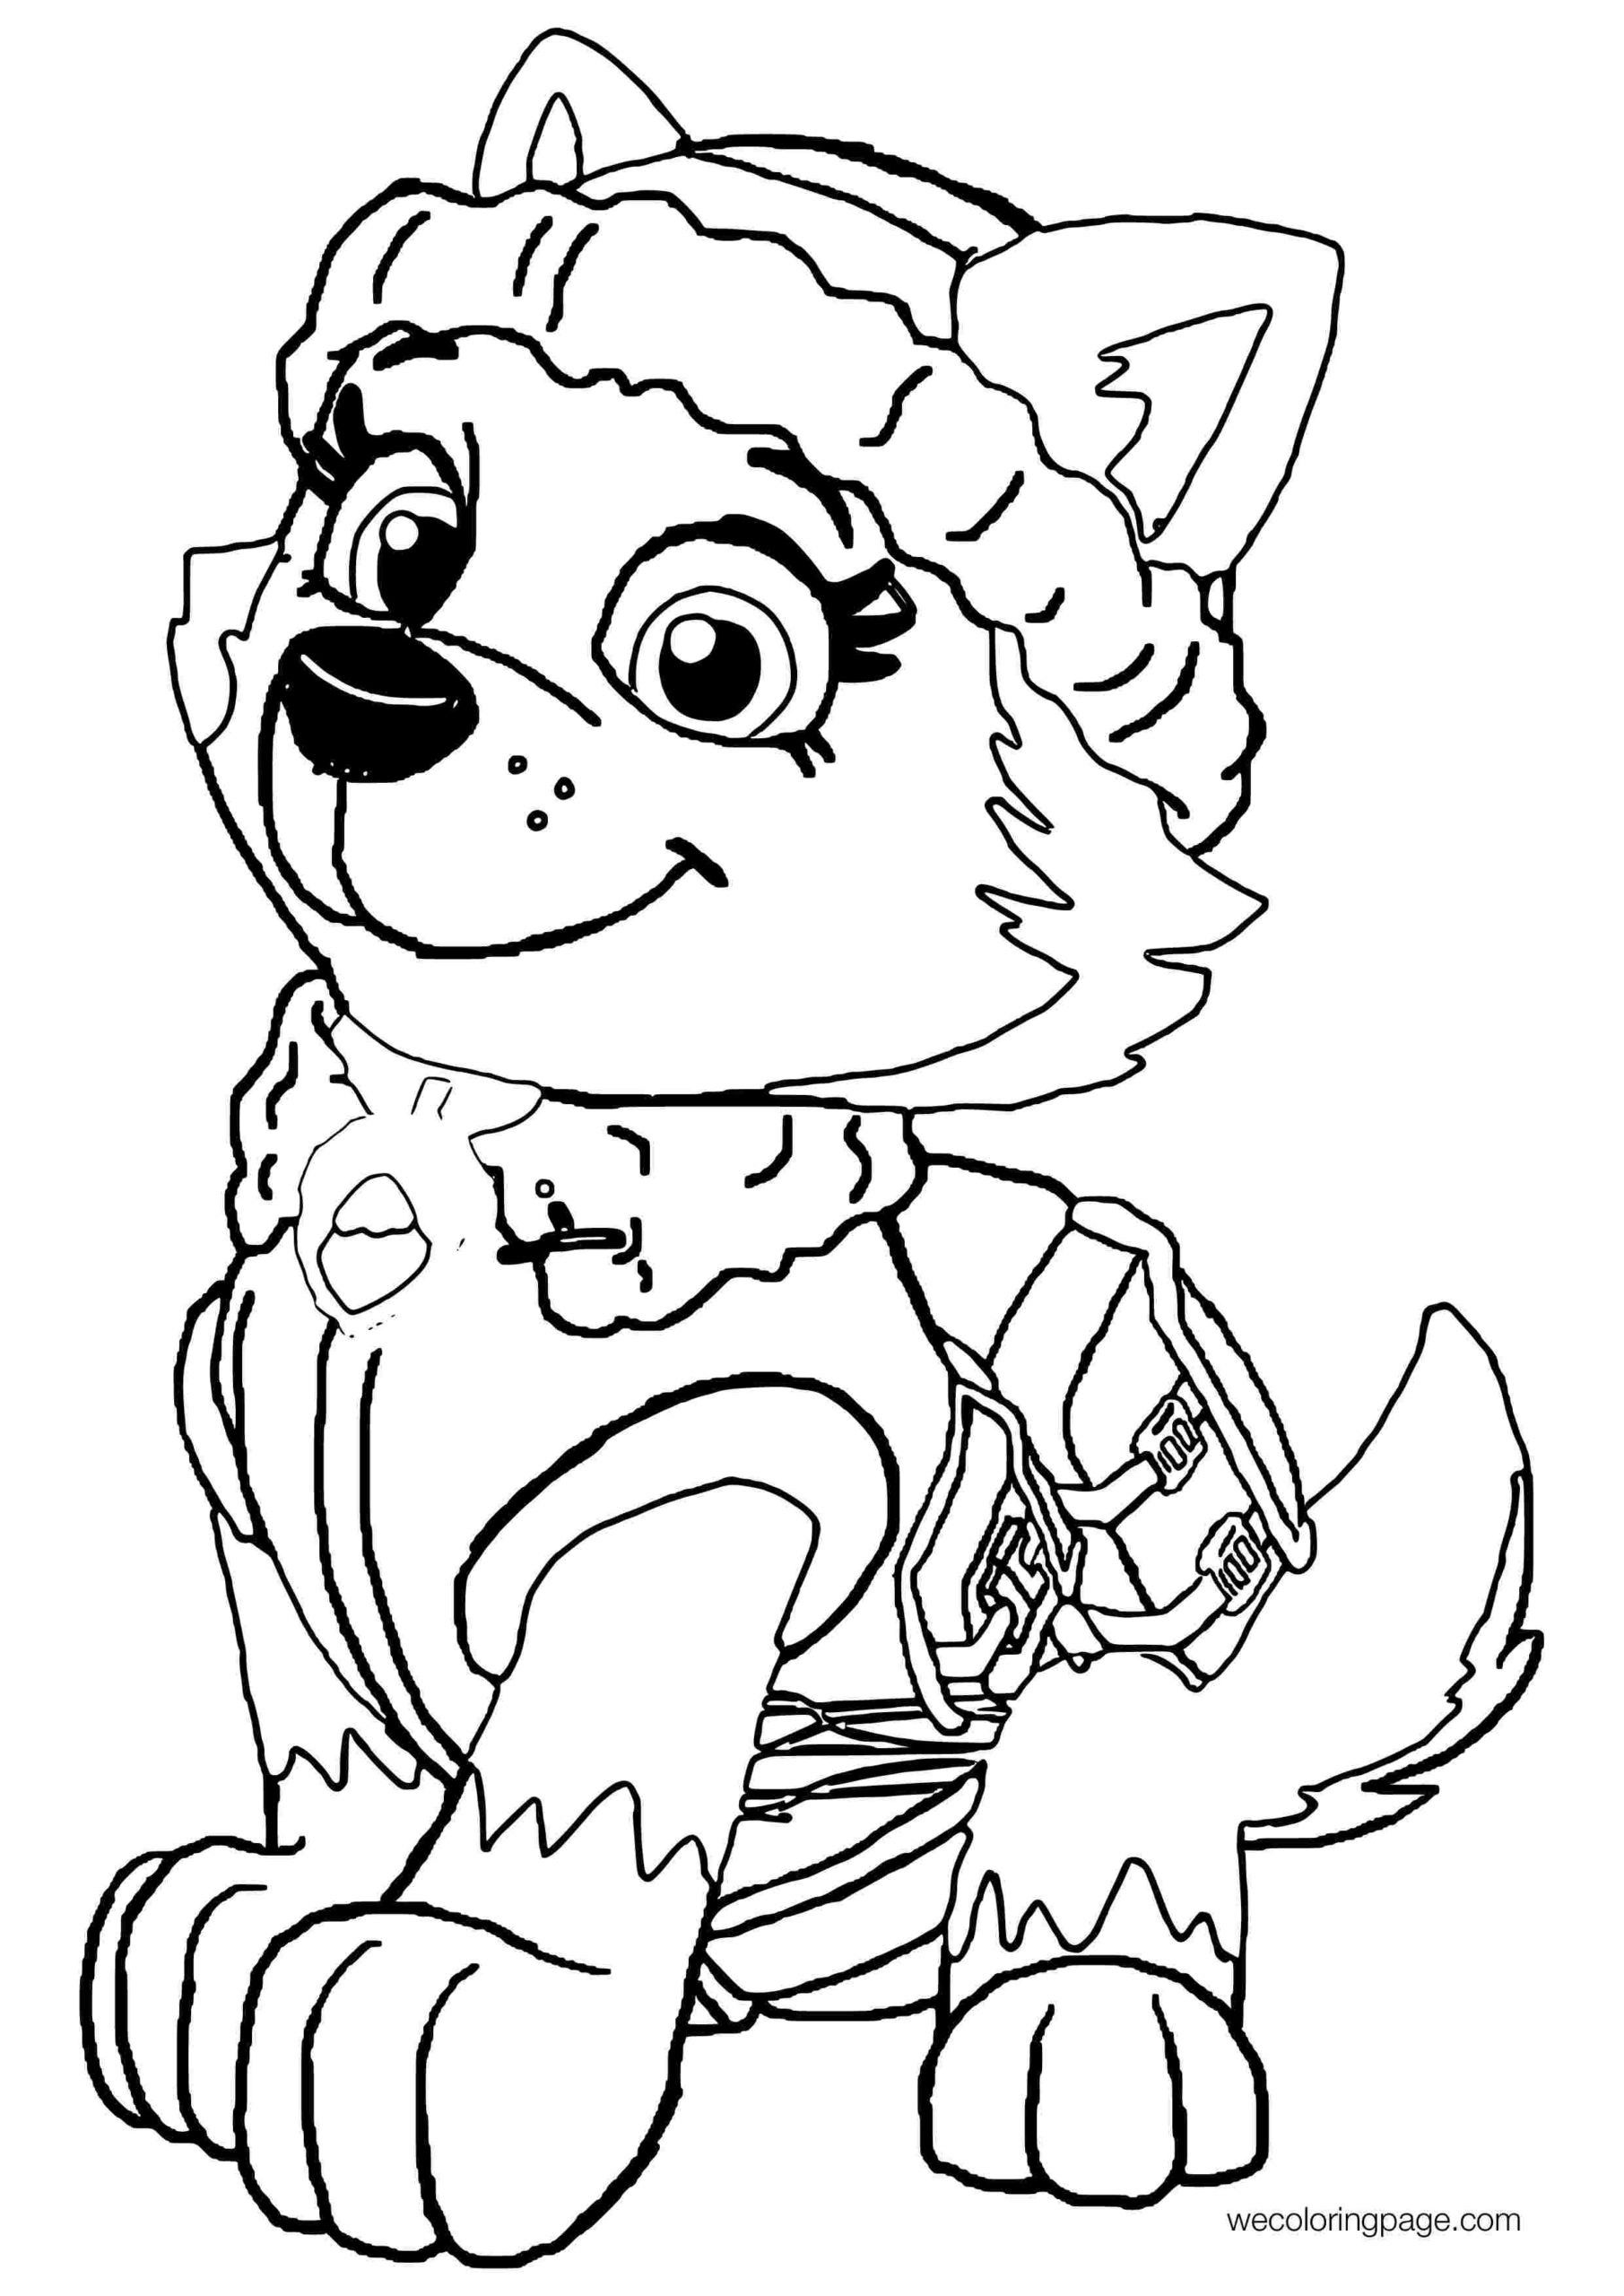 Everest Paw Patrol Coloring Page Youngandtae Com In 2020 Paw Patrol Coloring Paw Patrol Coloring Pages Dog Coloring Page